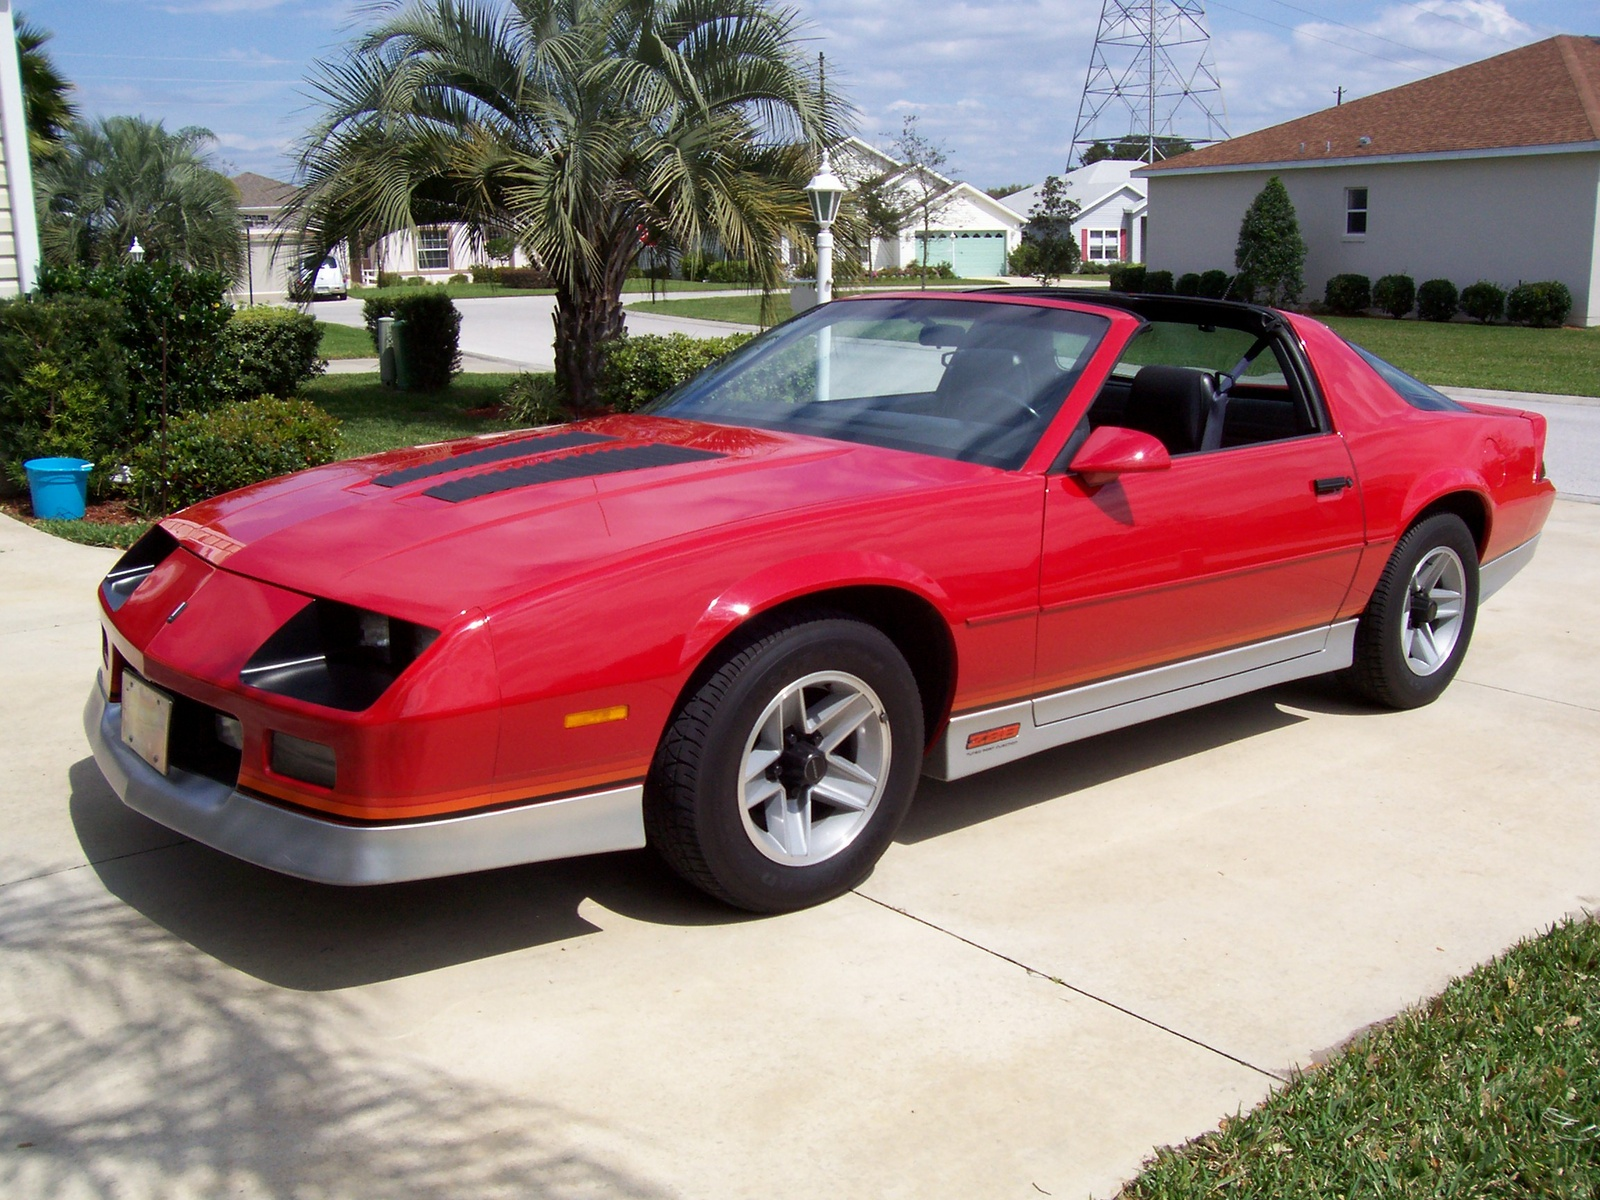 1980s camaro z28 iroc for sale on ebay autos post. Black Bedroom Furniture Sets. Home Design Ideas